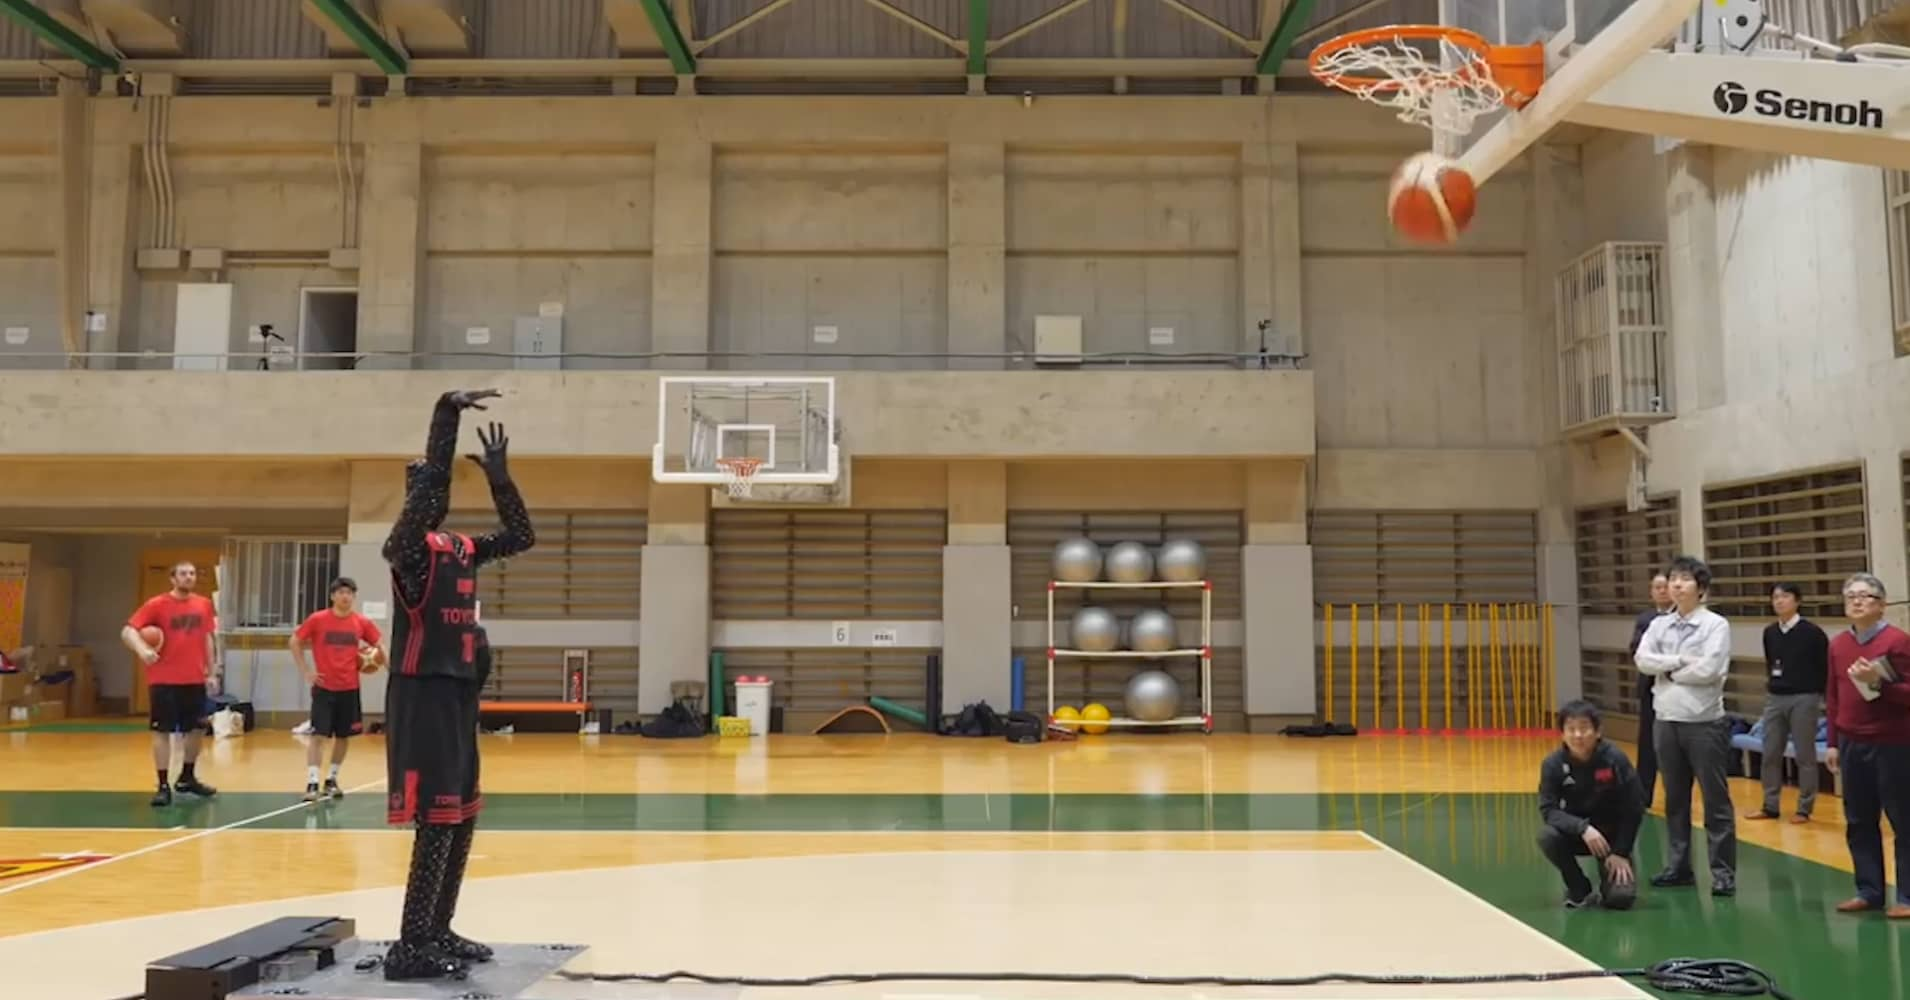 Toyota created a robot that shoots hoops better than the pros